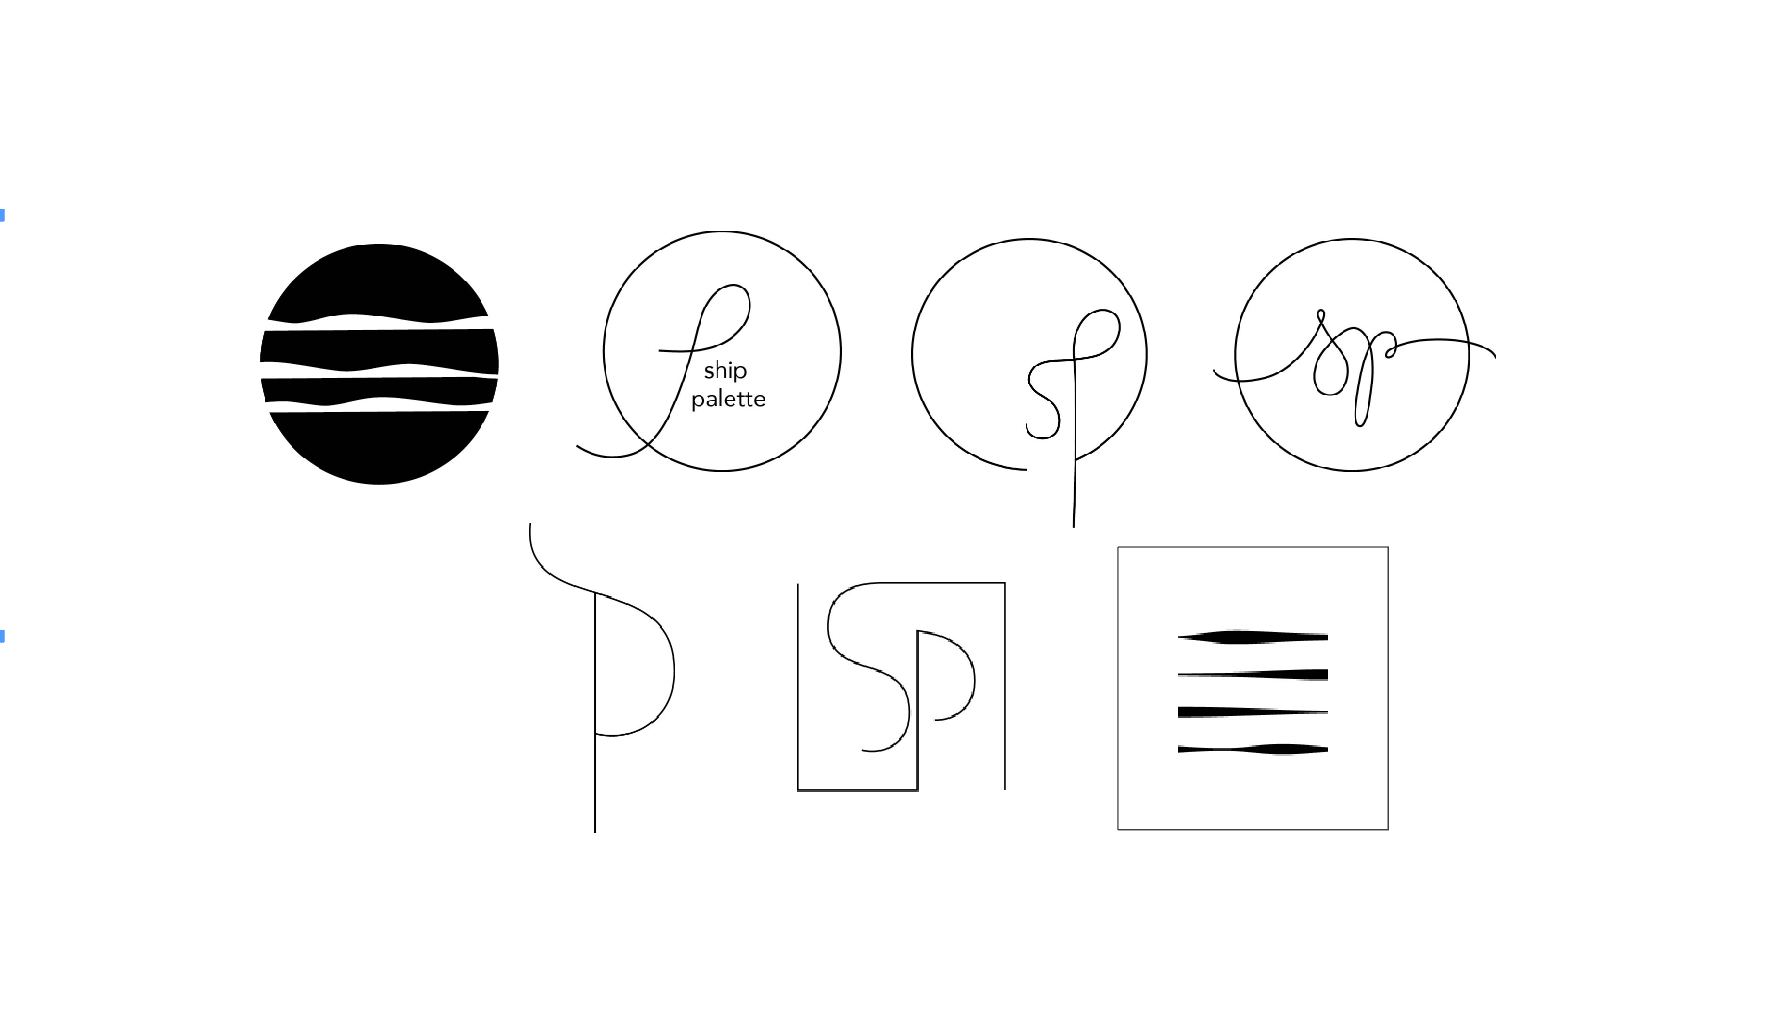 Considered logo proposals